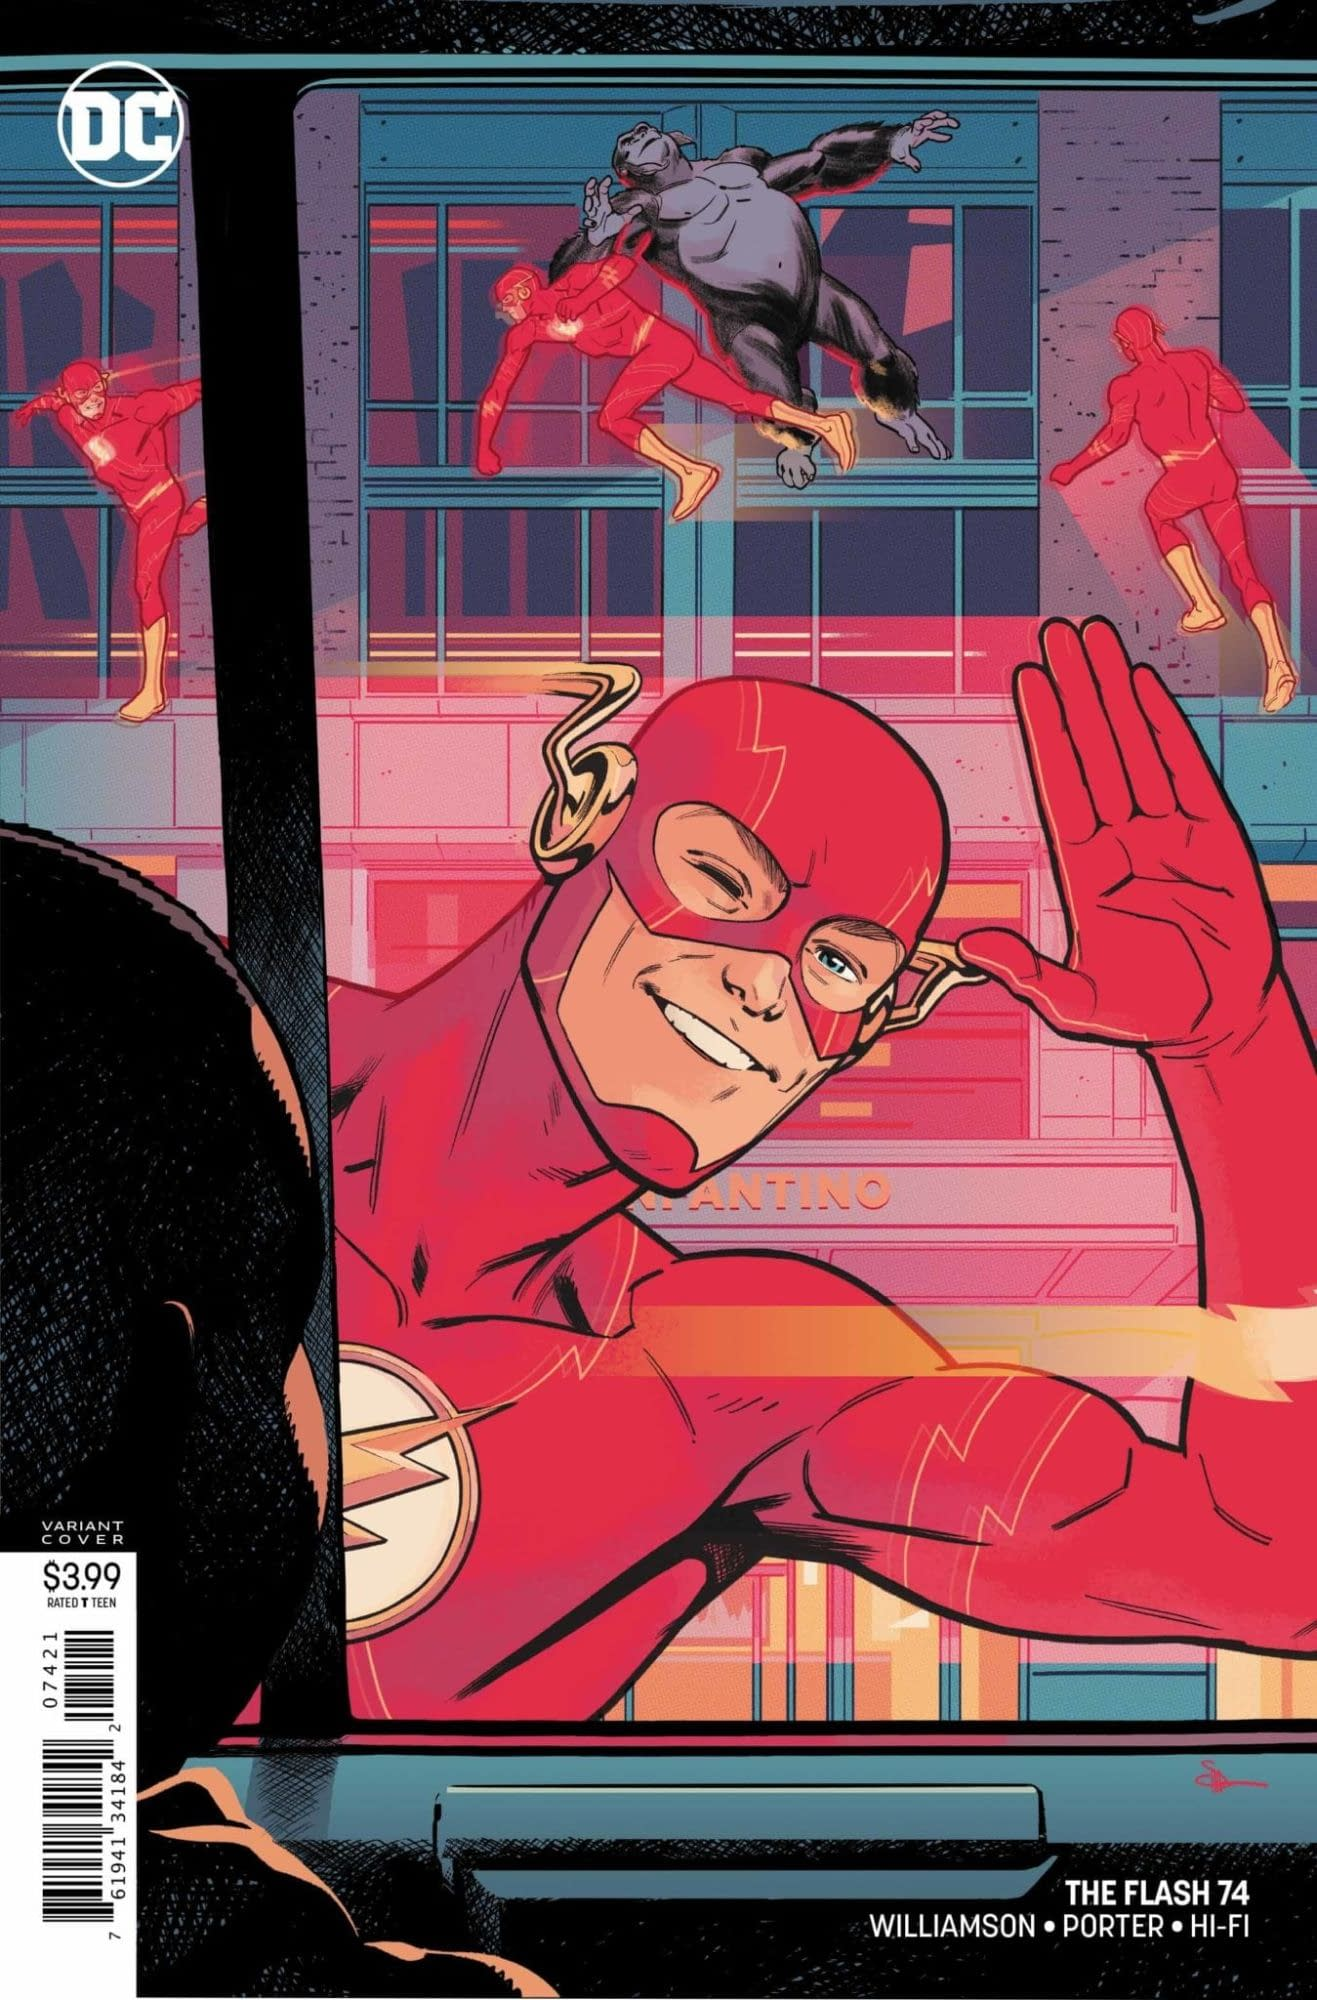 The Flash #74: Journalistic Integrity [Preview]